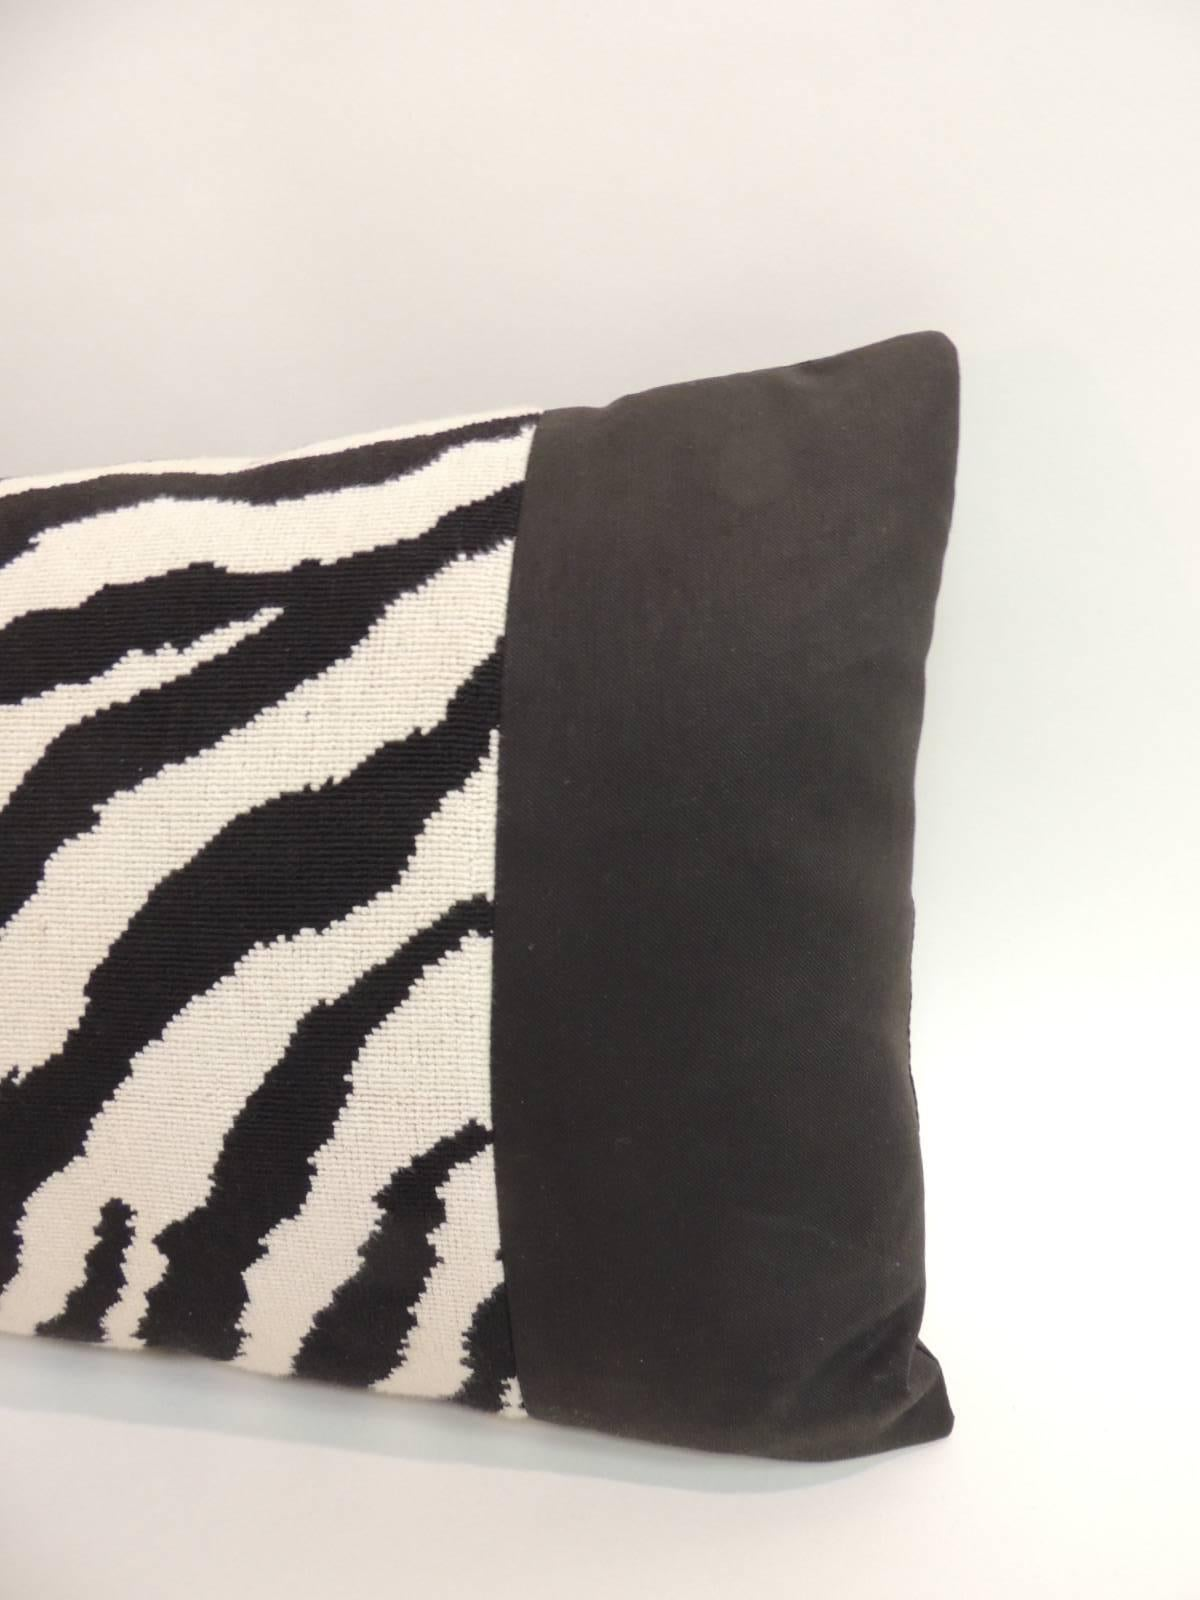 Vintage Black And White Zebra Pattern Long Decorative Bolster Pillow With  Black Cotton Frame And Backing